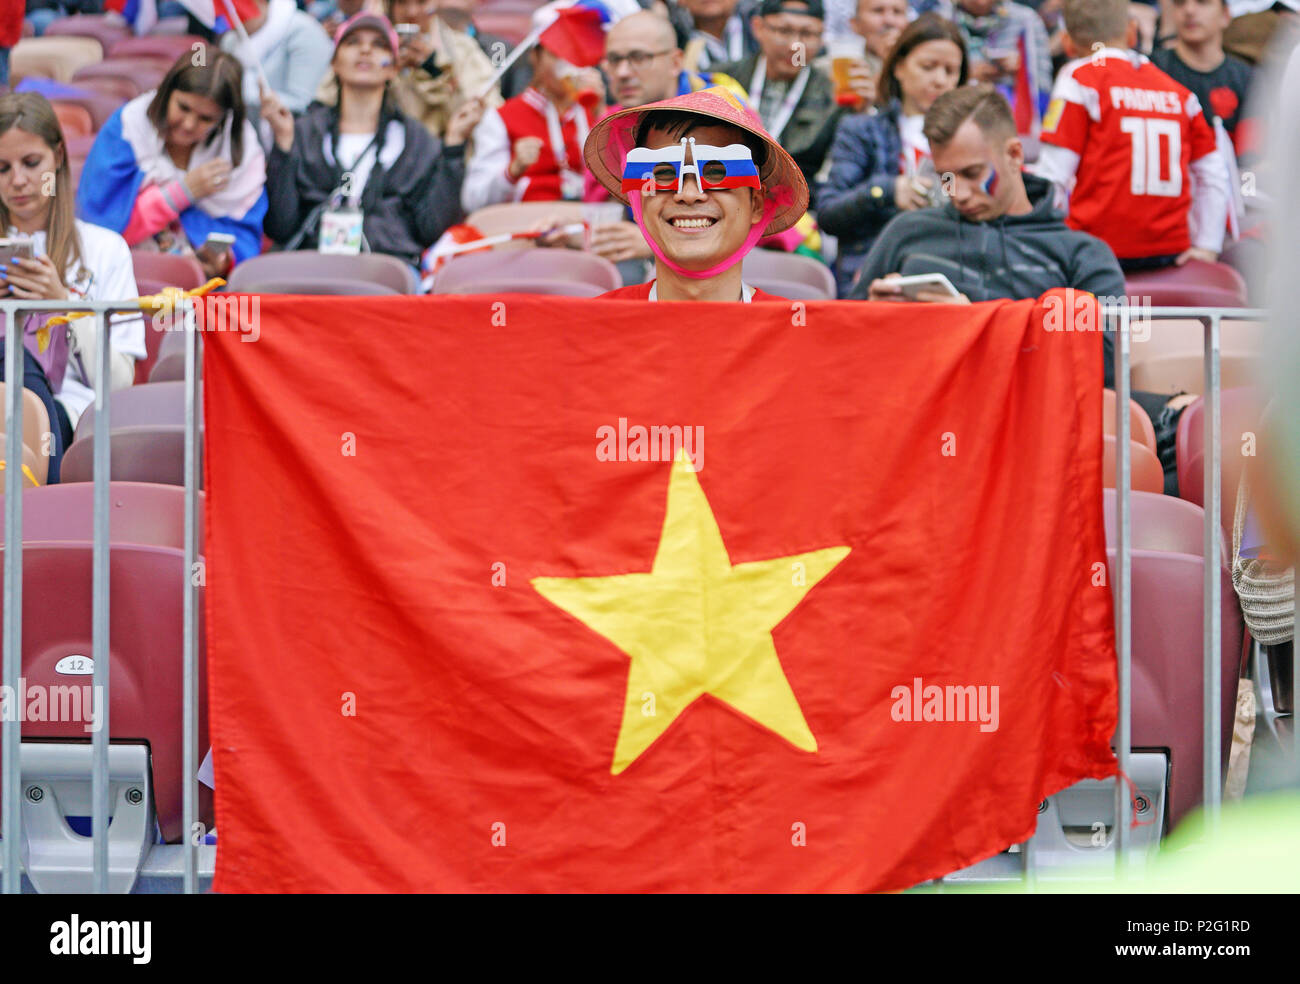 20 Funniest FIFA World Cup Russia 2019 Outfits